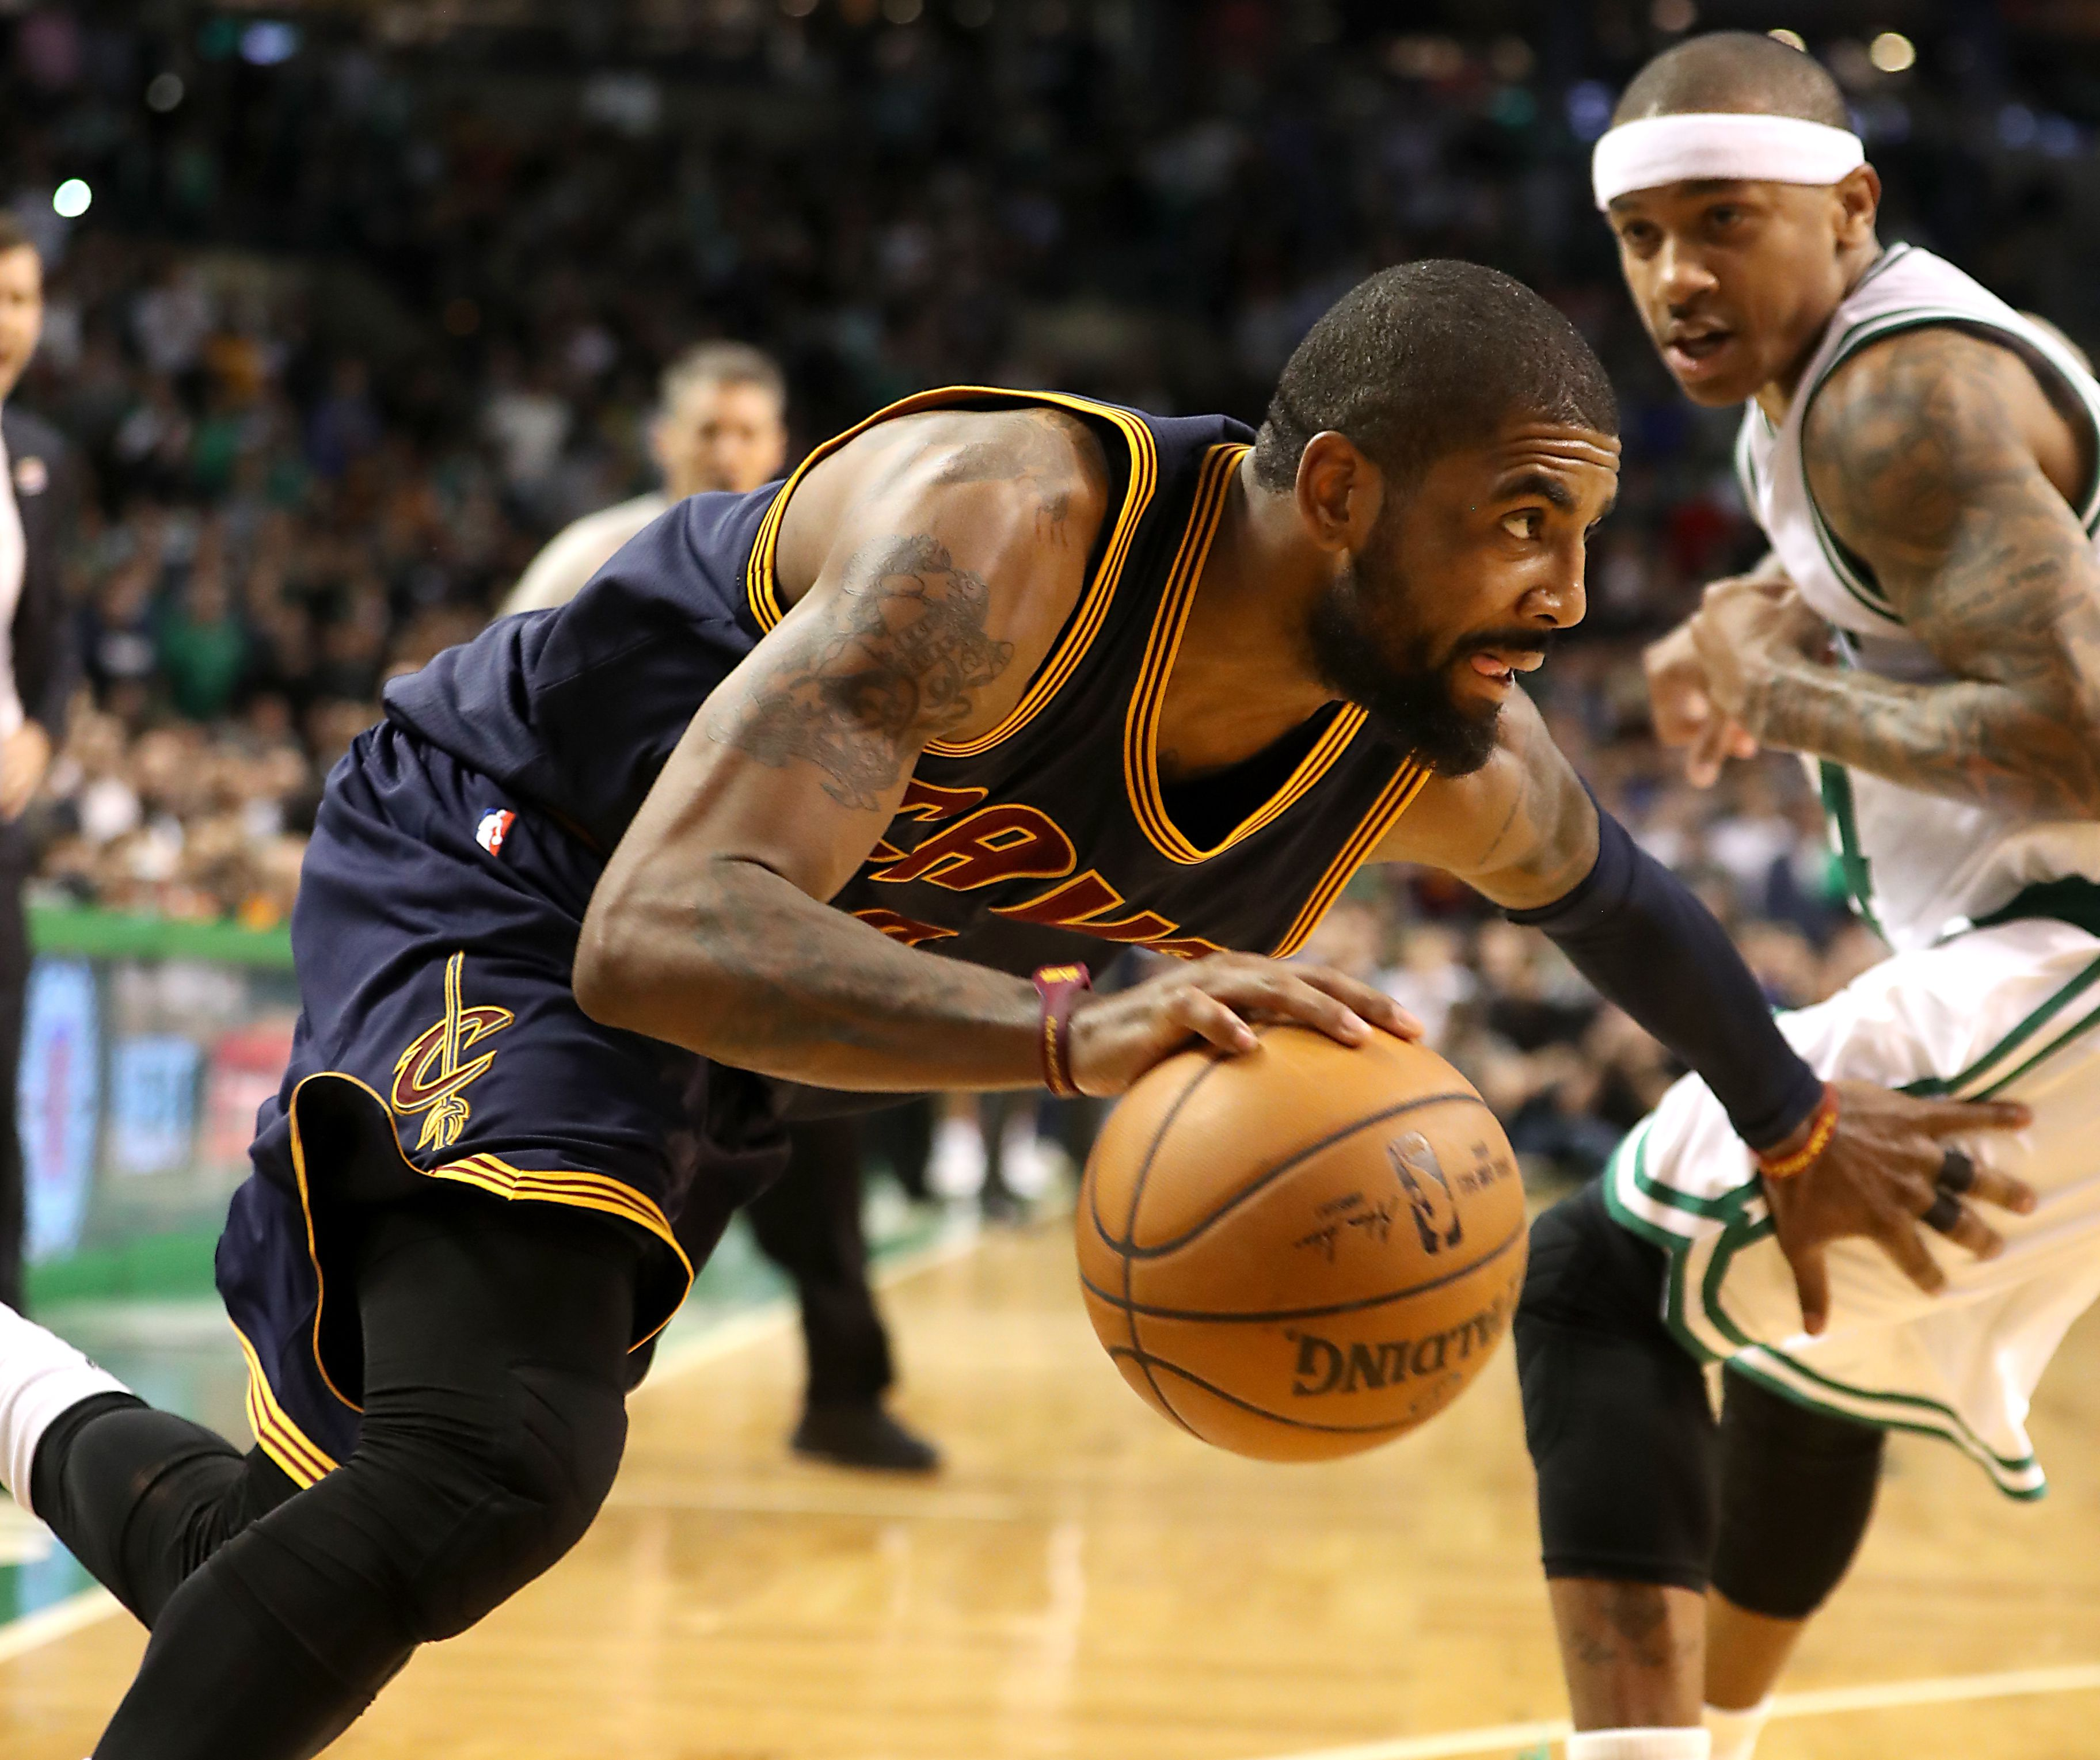 260ff8d4c211 Five things you may not know about Kyrie Irving - The Boston Globe